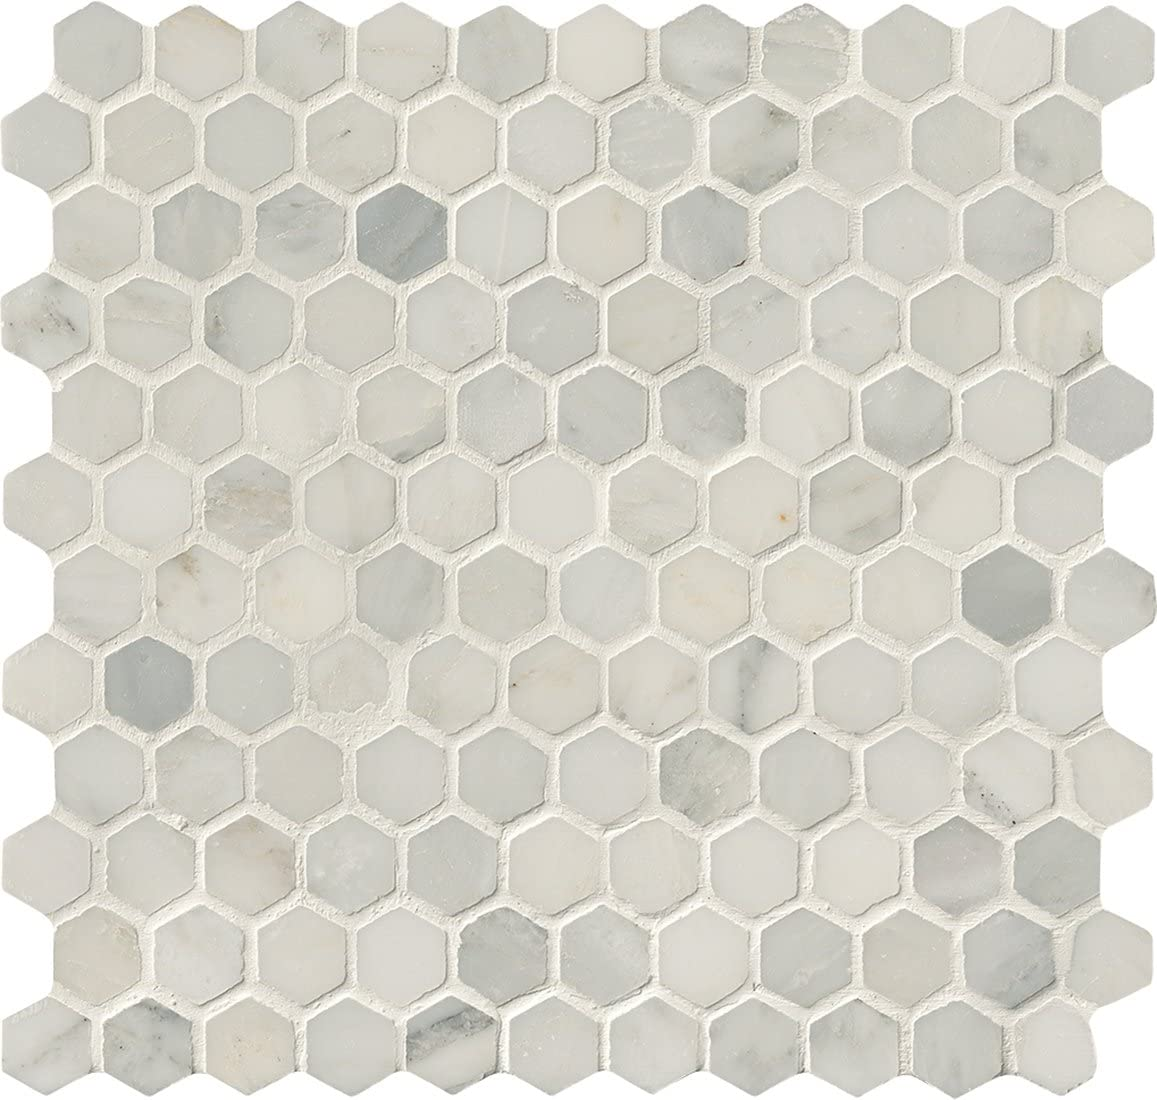 NEW before selling Don't miss the campaign 8.9 Sq. Ft. Case Elegant Luxury in. Modern 12 Hexagon White